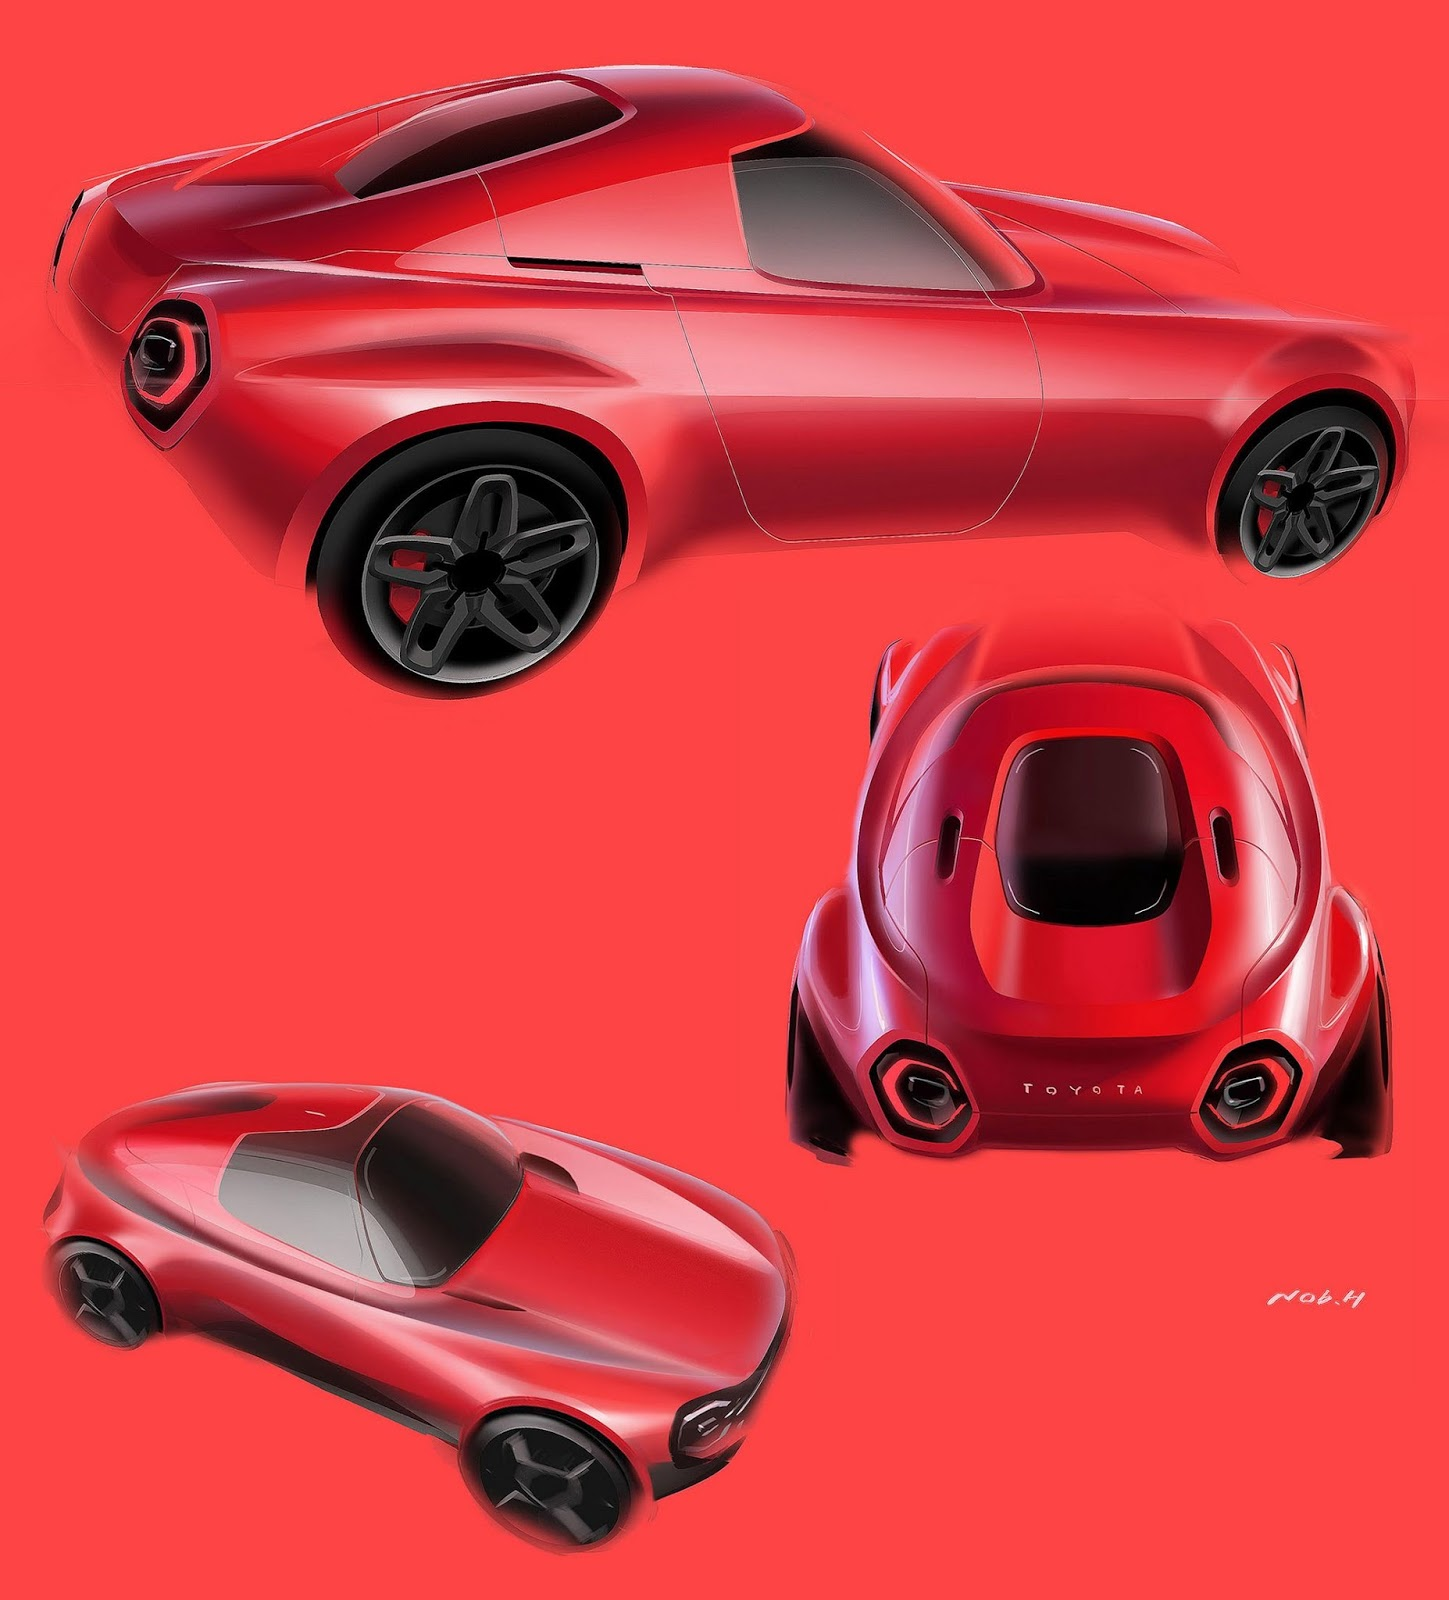 Toyota Sports Car: Does Toyota Need Another Cheap Sports Car?